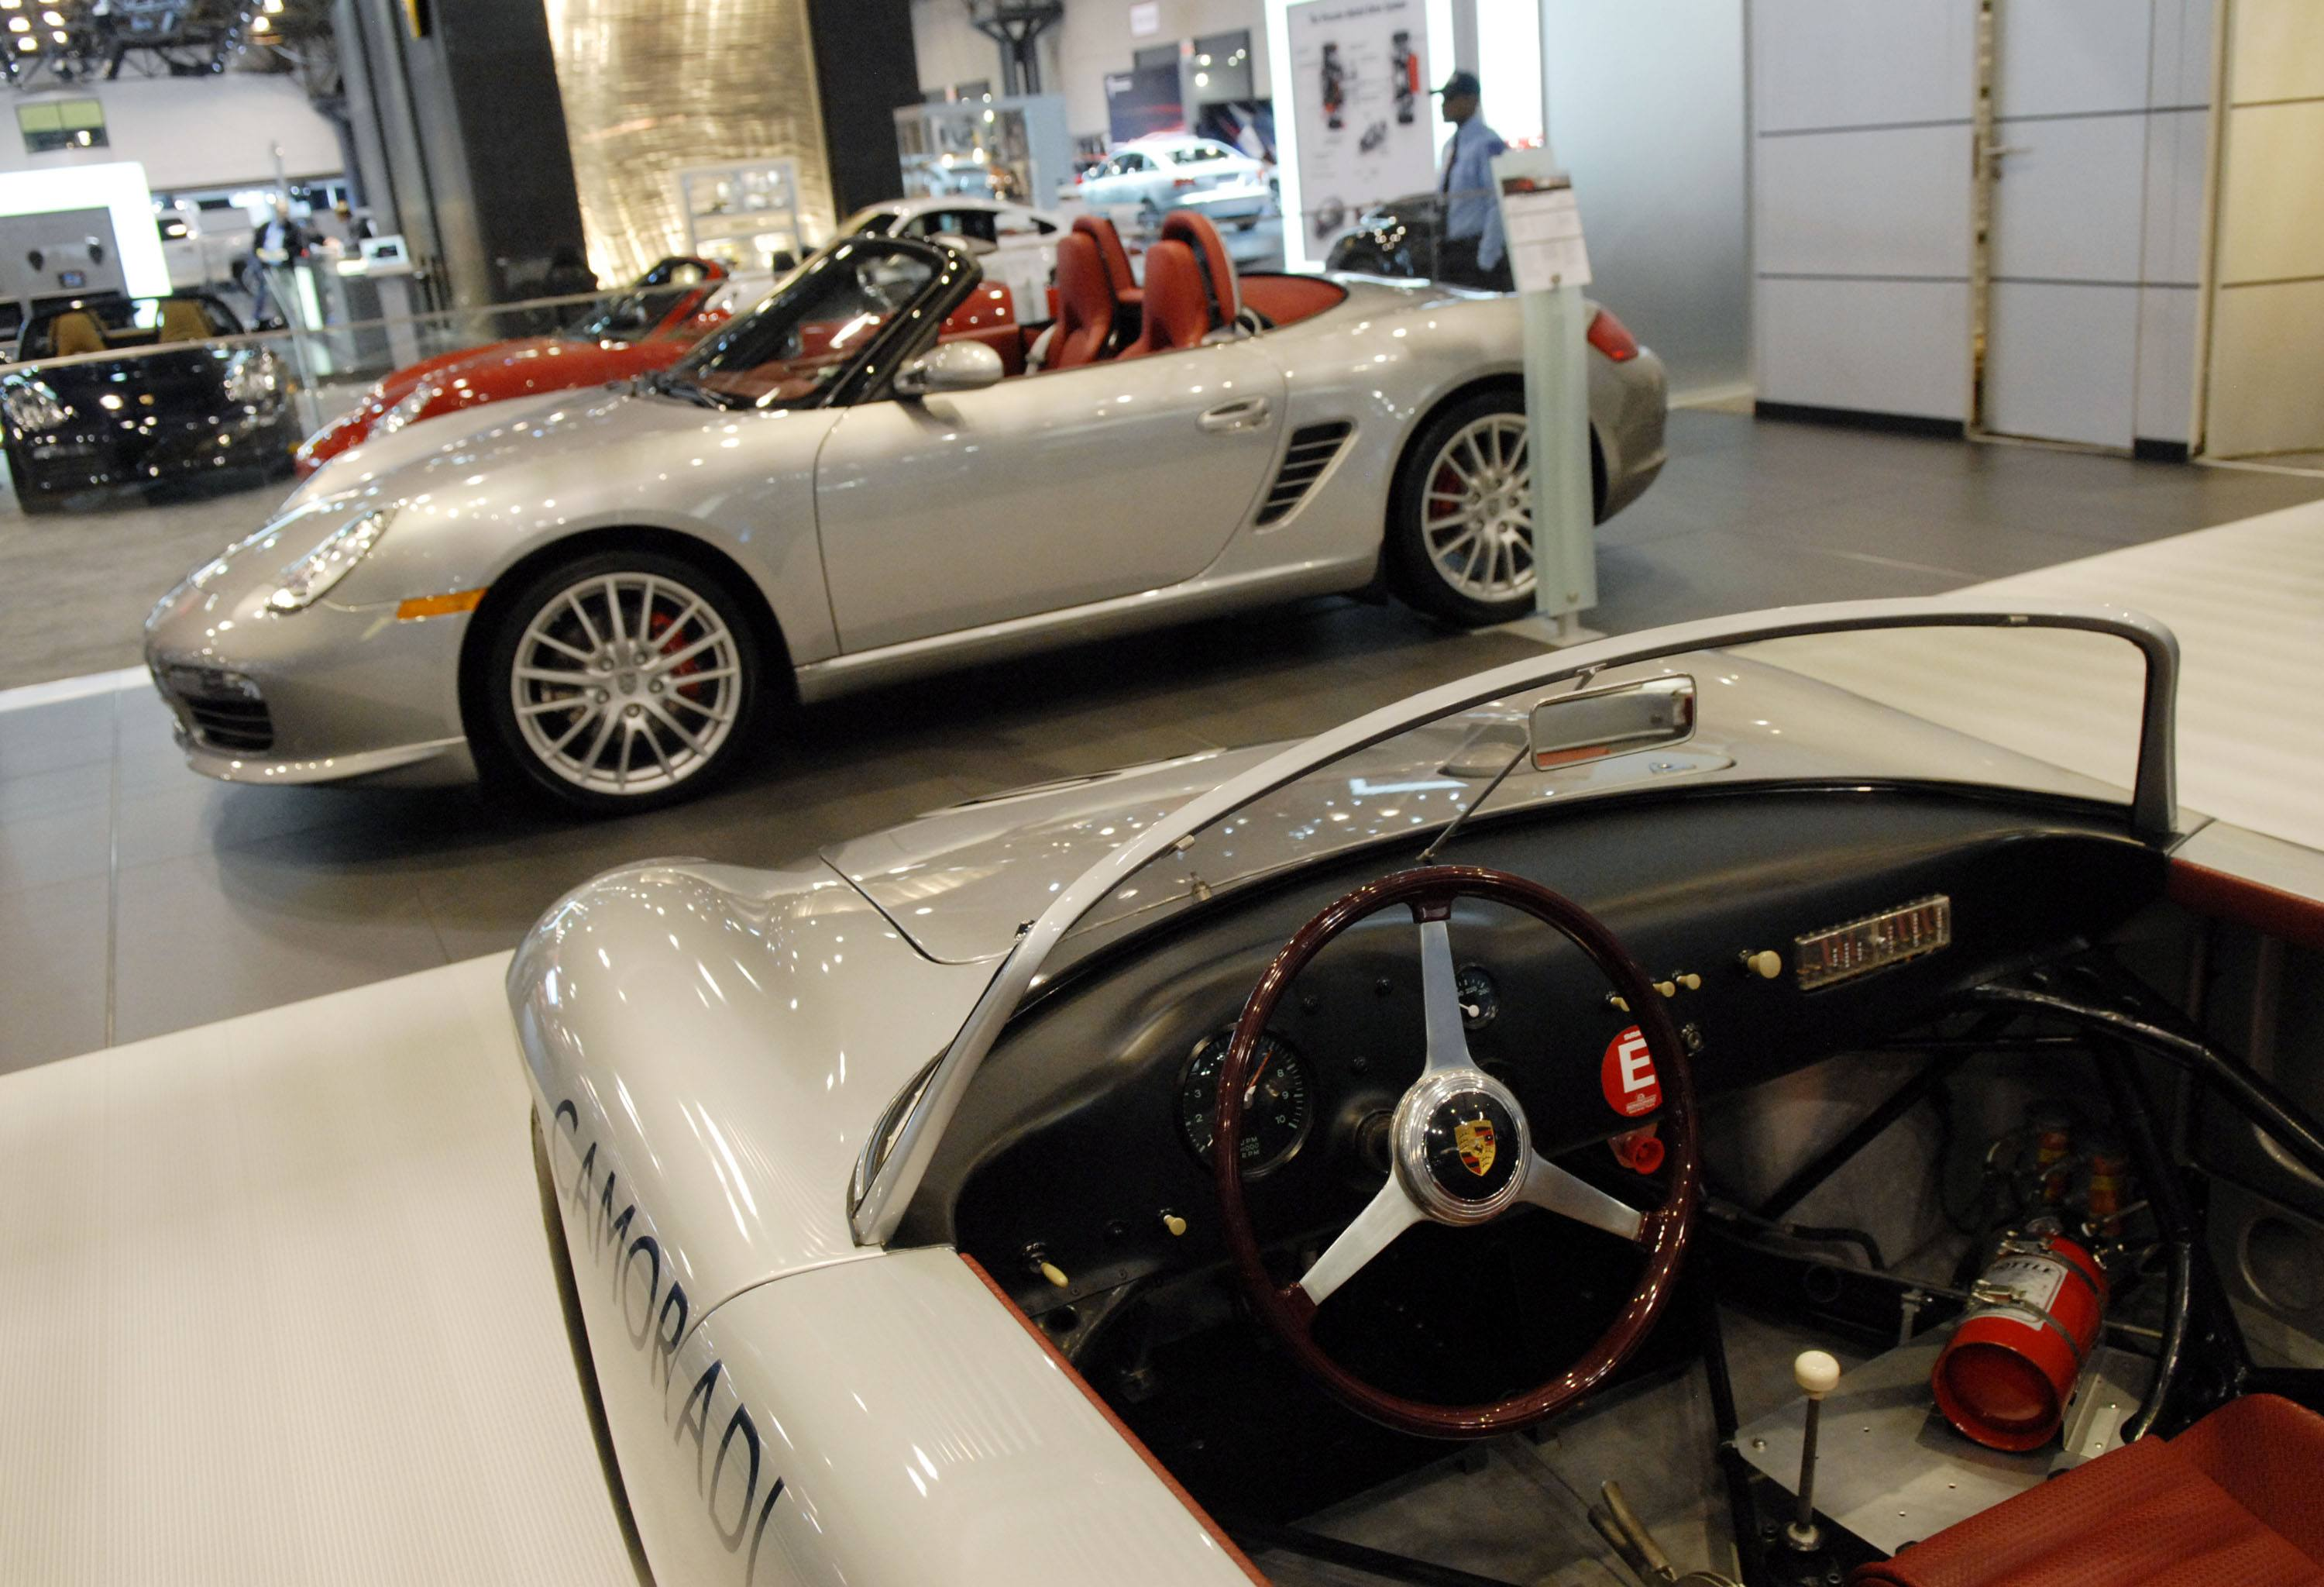 1960 Porsche RS-60 and a Boxster RS-60